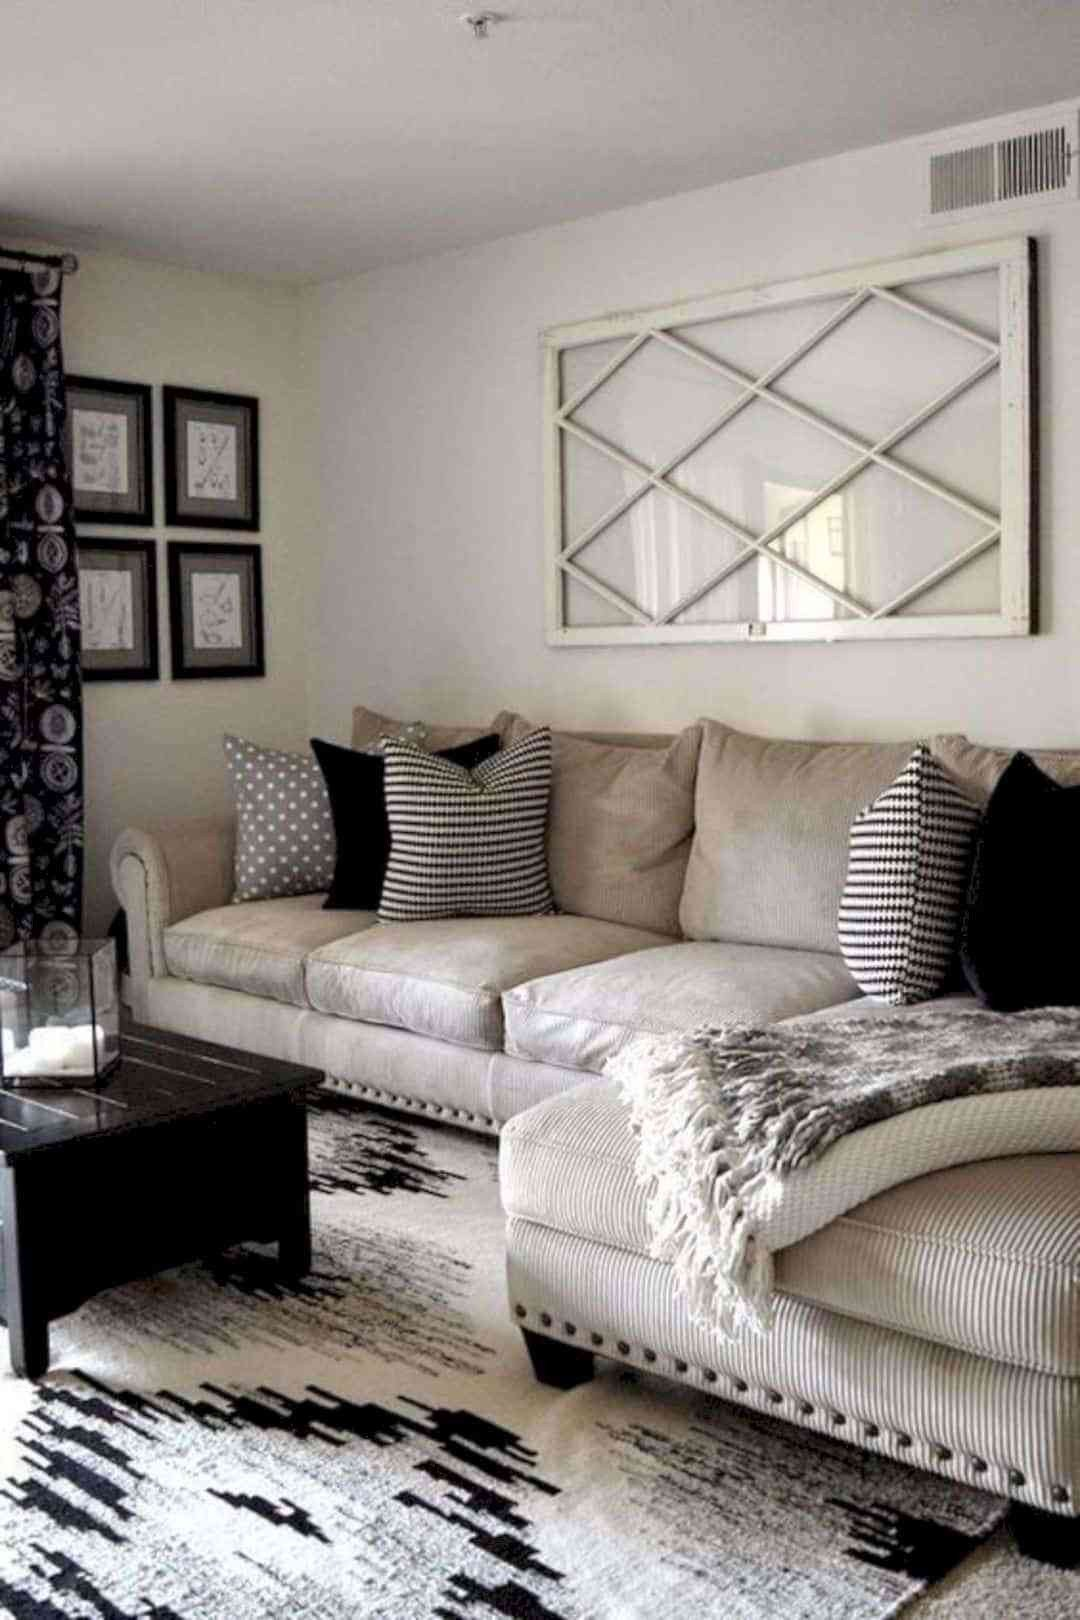 Living Room Furniture Ideas Awesome 16 top Small Living Room Furniture Ideas Futurist Architecture